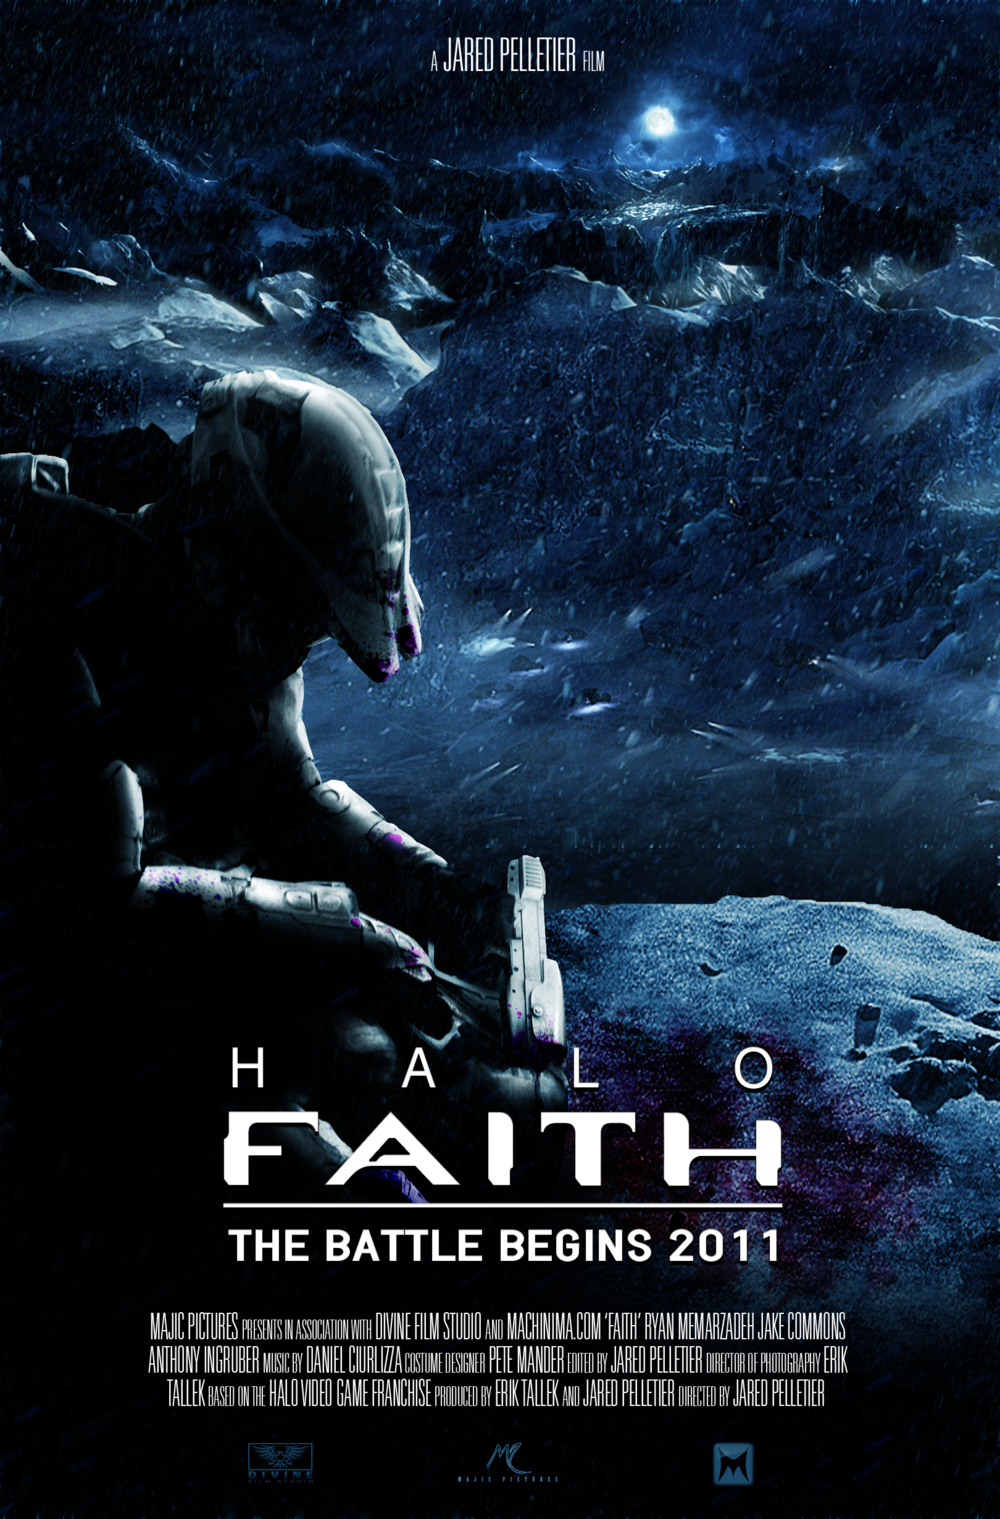 HALO: FAITH Fan Film Poster and Teaser Image — GeekTyrant Green Lantern Movie Poster